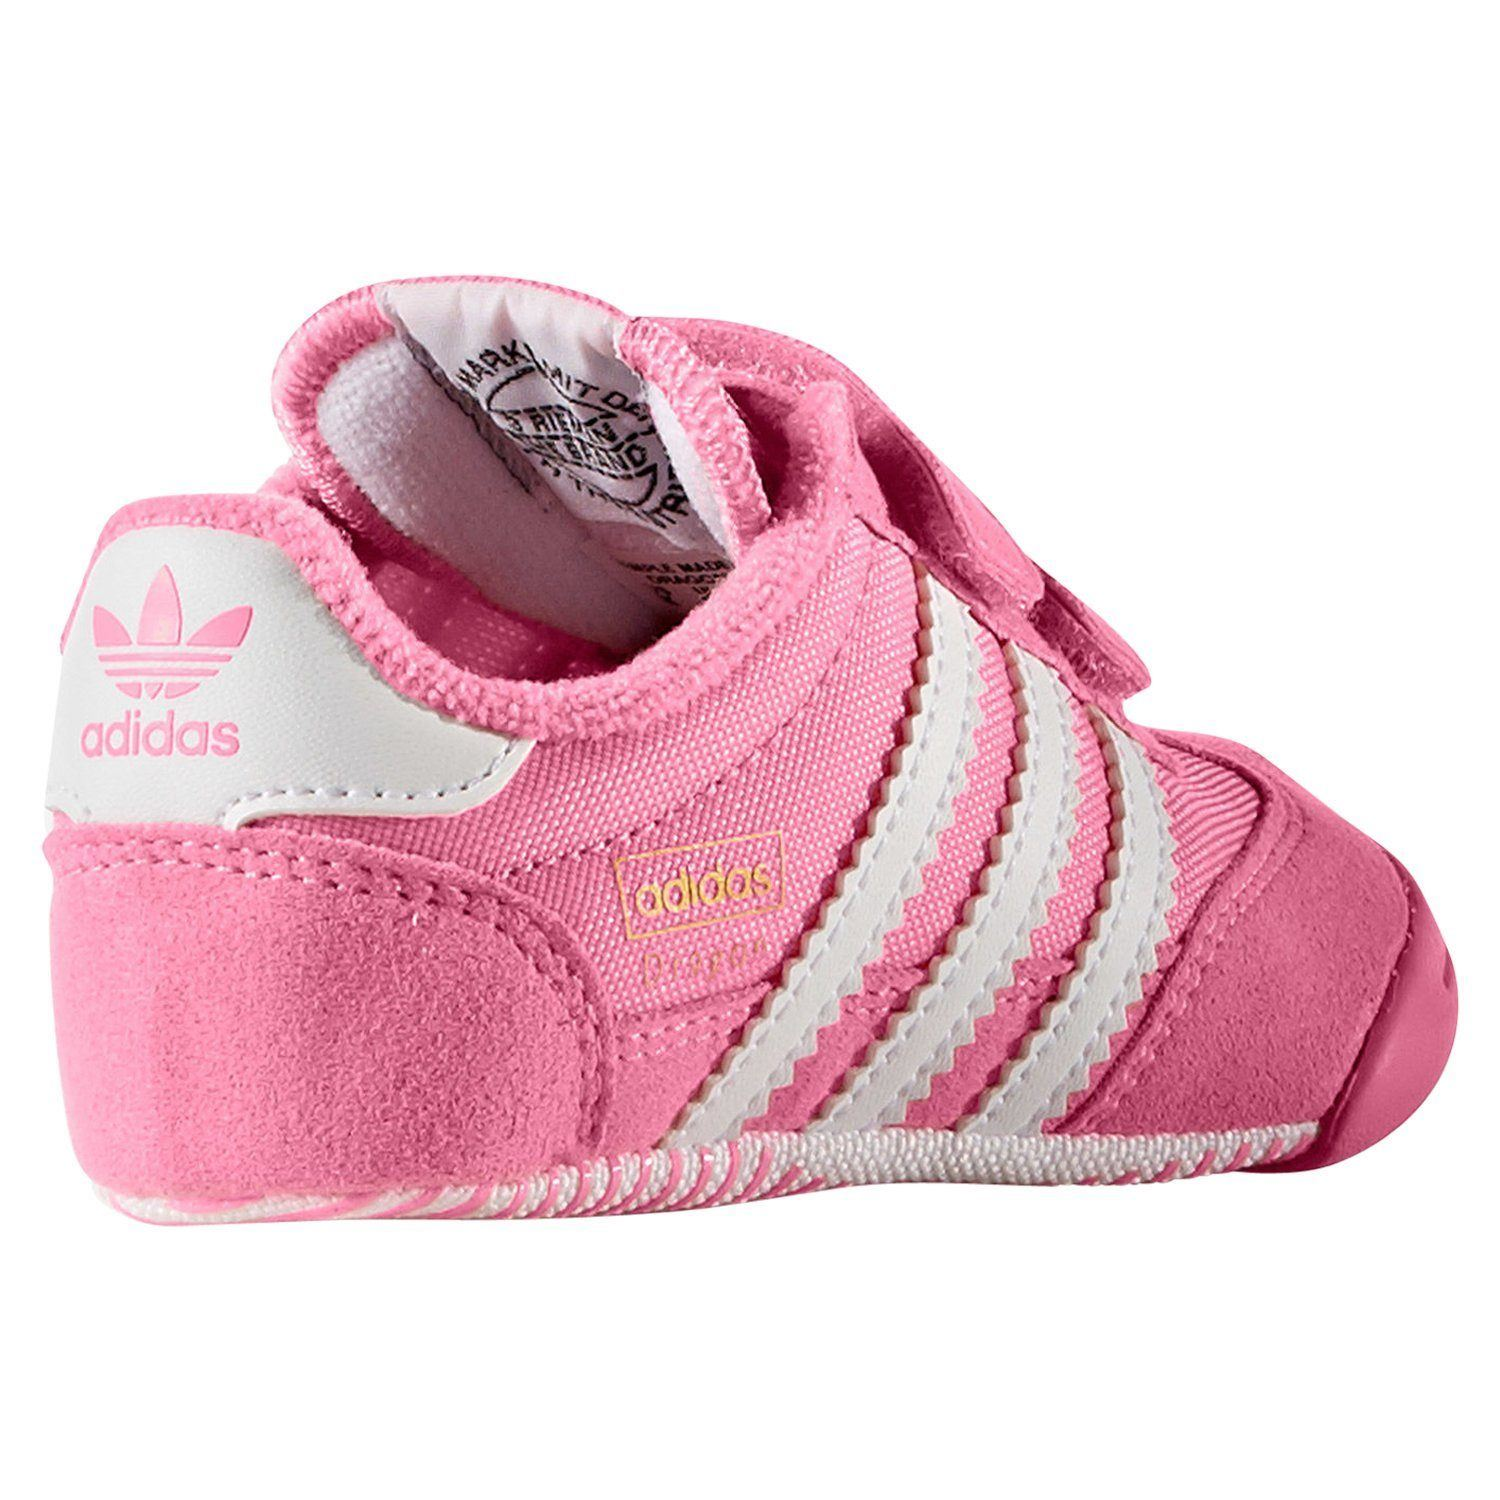 cf27e58cc852 adidas ORIGINALS DRAGON L2W CRIB TRAINERS PINK BOOTIES SHOES BABY KIDS GIRLS  NEW